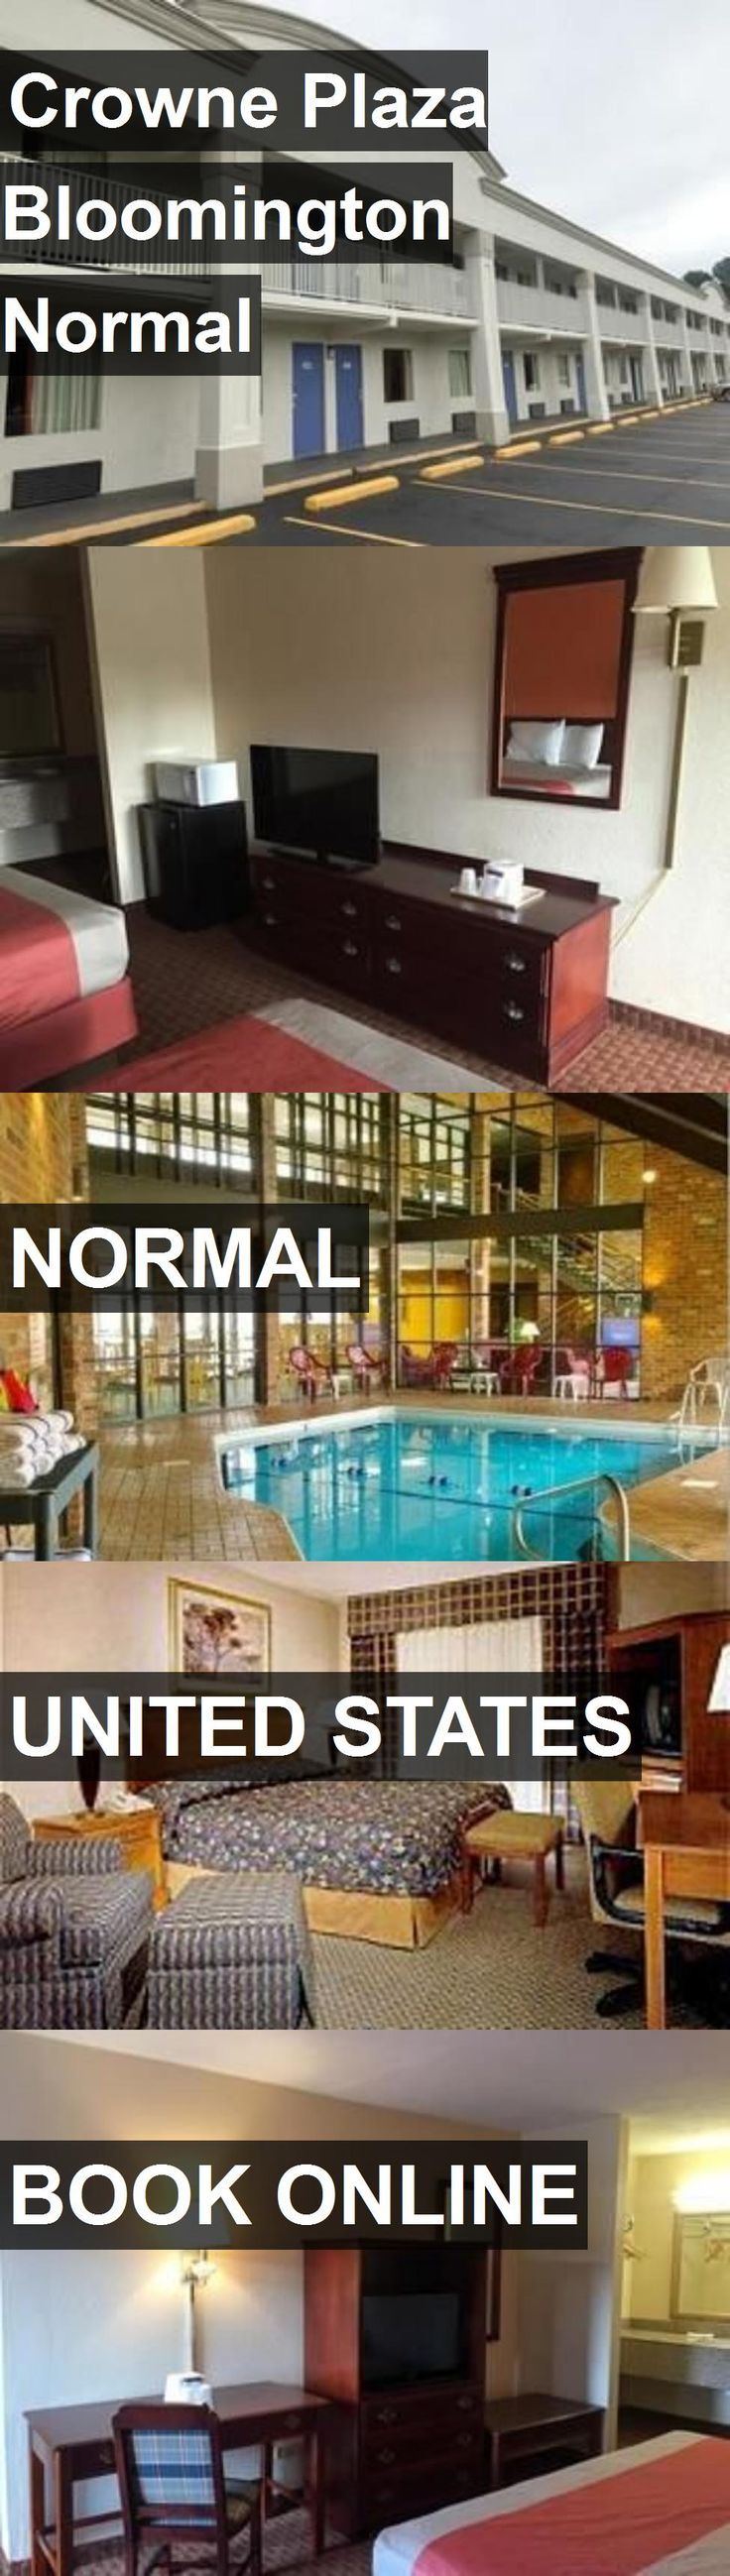 Hotel Crowne Plaza Bloomington Normal in Normal, United States. For more information, photos, reviews and best prices please follow the link. #UnitedStates #Normal #travel #vacation #hotel  United States Have more information on our Site  http://storelatina.com/travelling